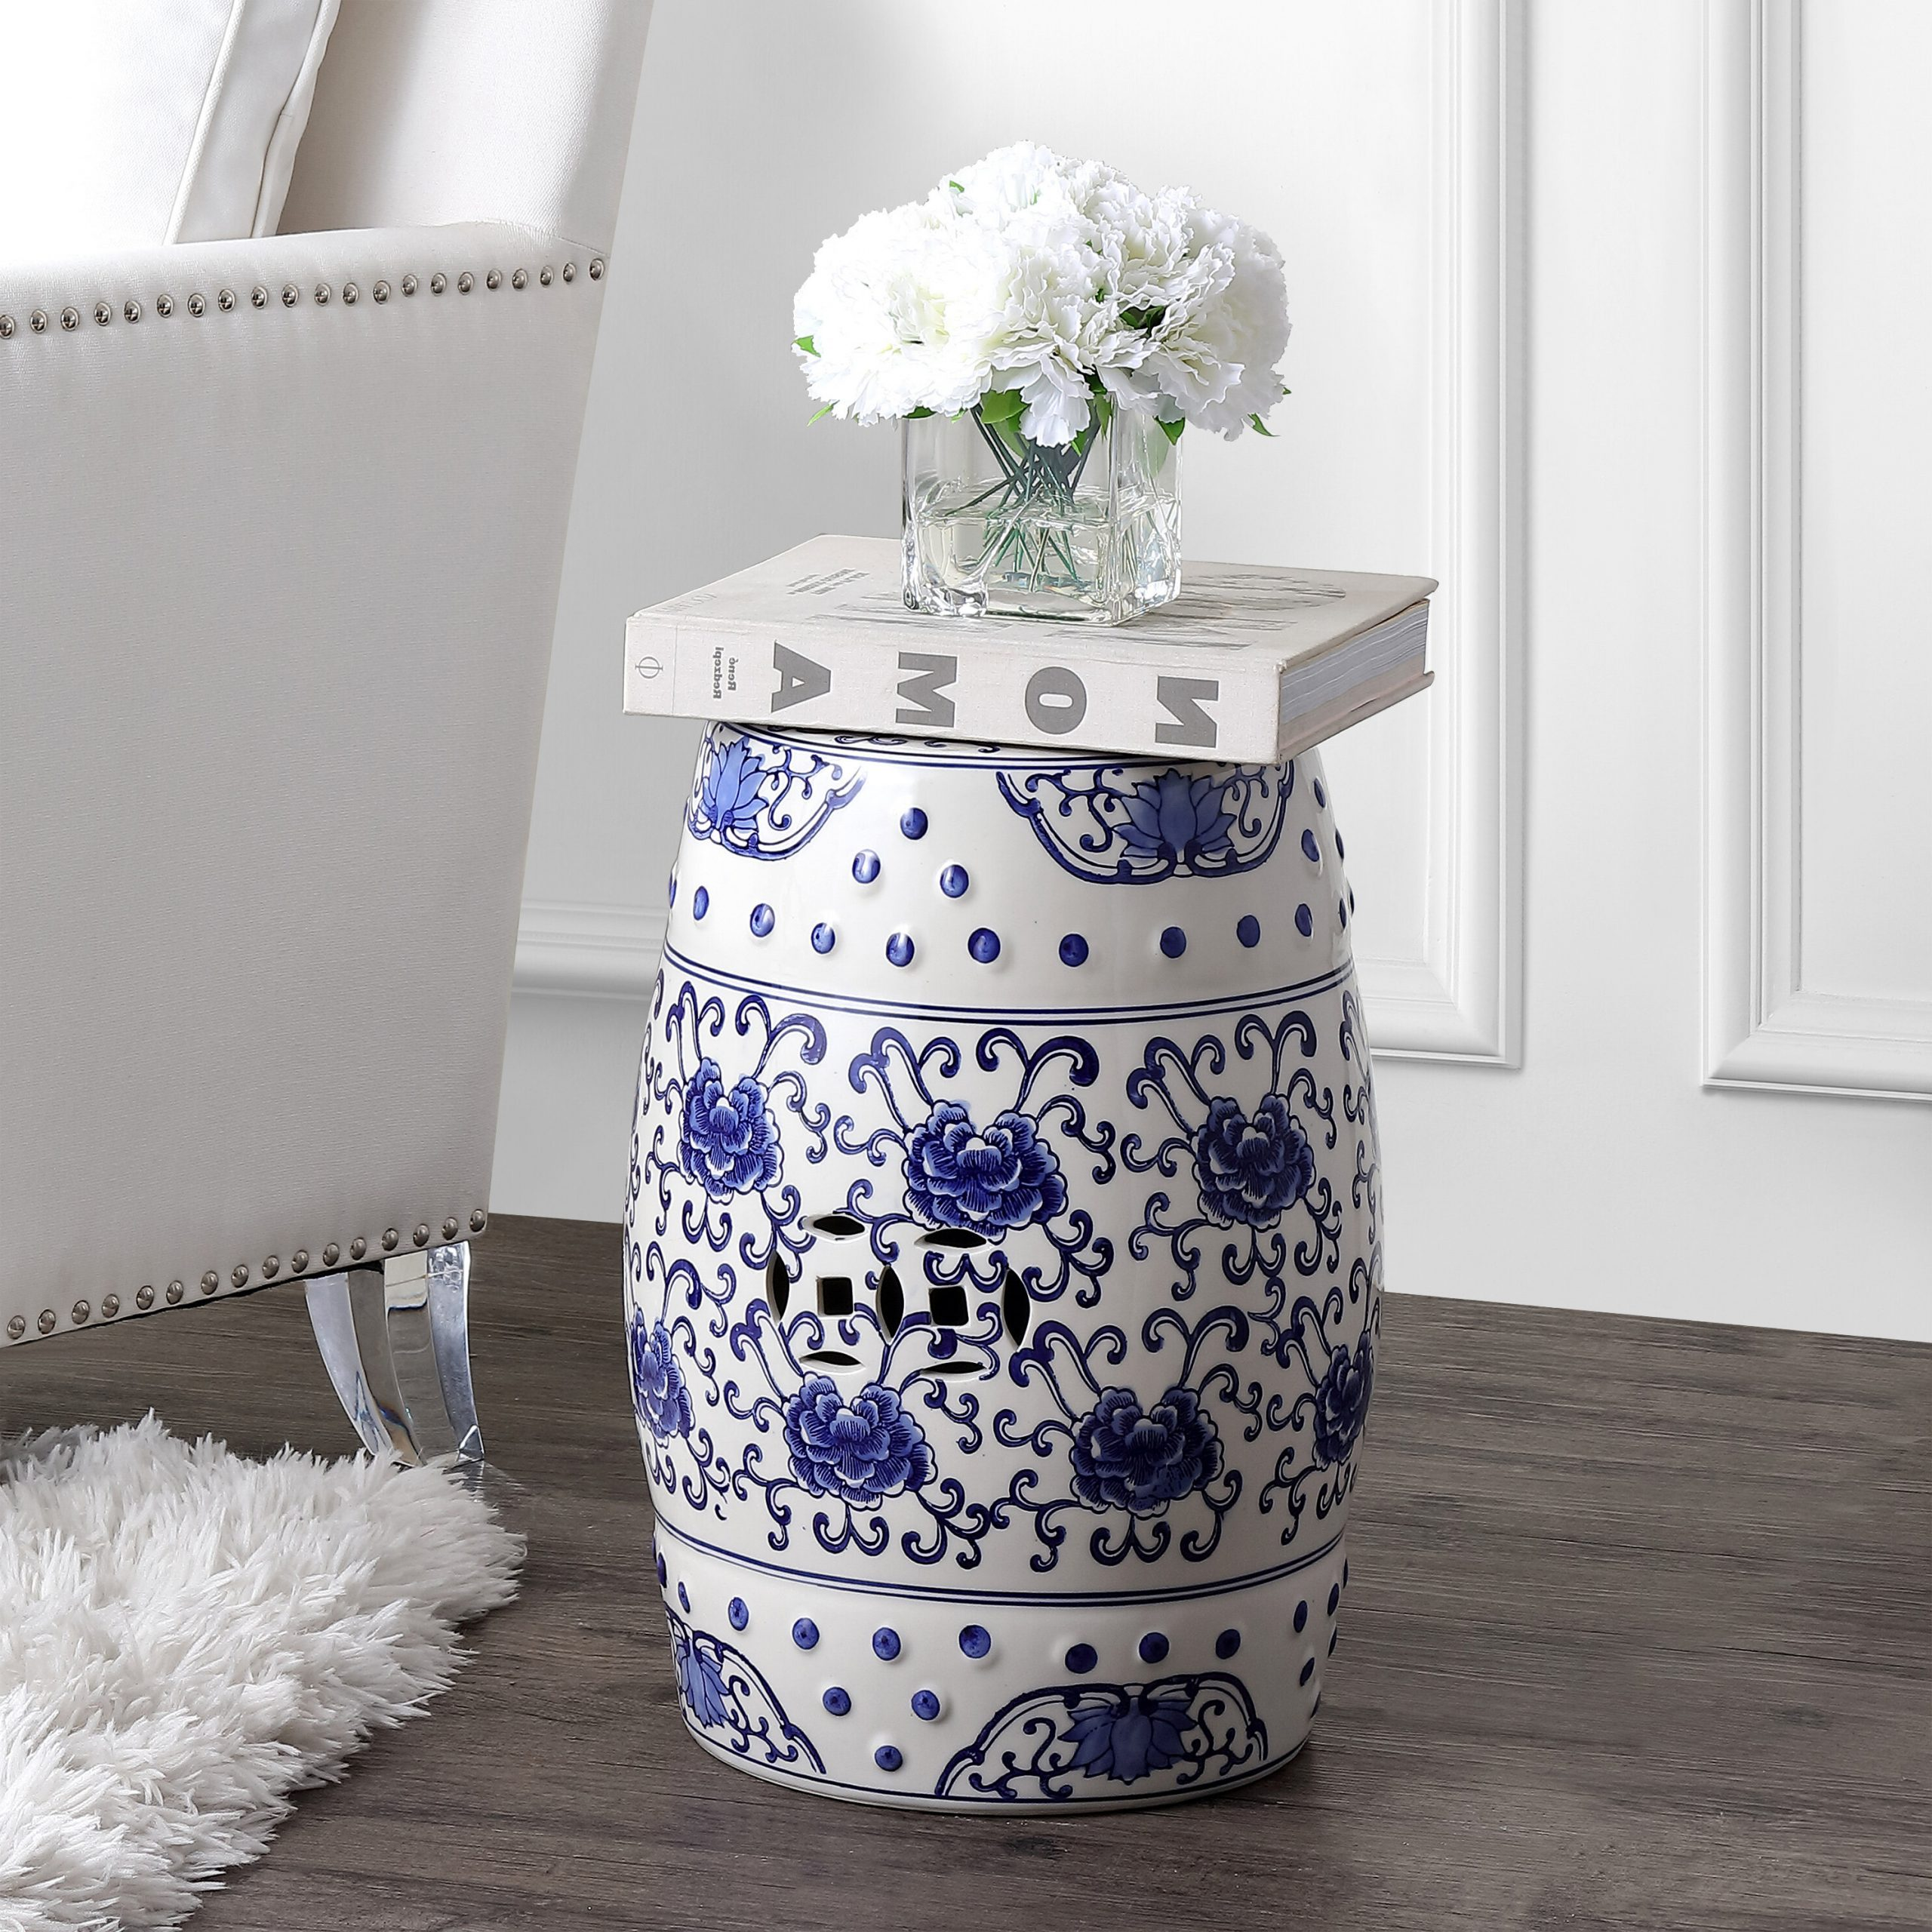 Wilde Poppies Ceramic Garden Stools Intended For Most Recent Blue & Green Garden Stools You'll Love In (View 12 of 30)